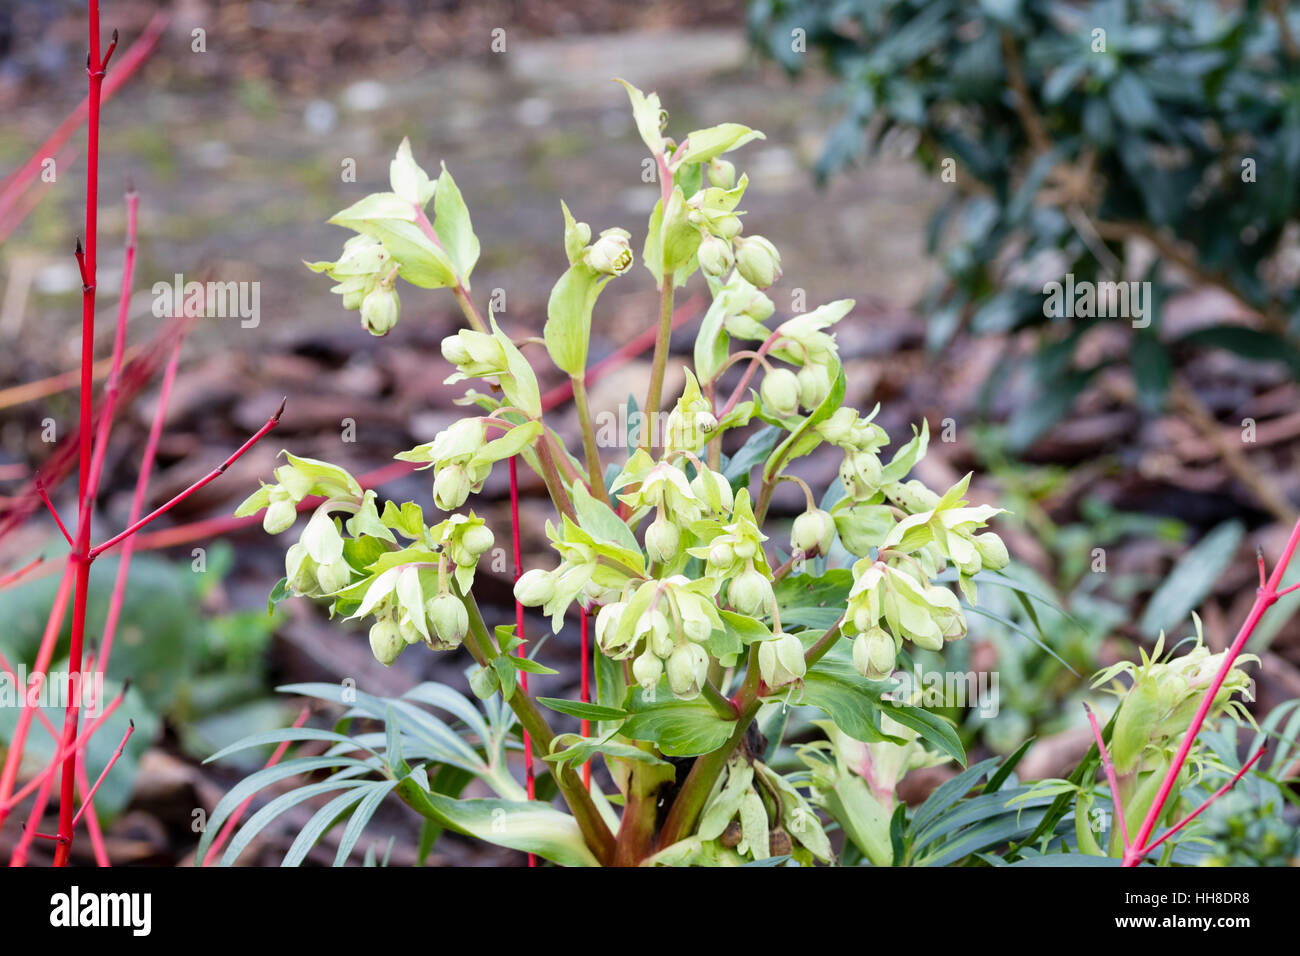 Red tipped flowers and reddish flower stems of the stinking hellebore, Helleborus foetidus 'Wester Flisk group' - Stock Image